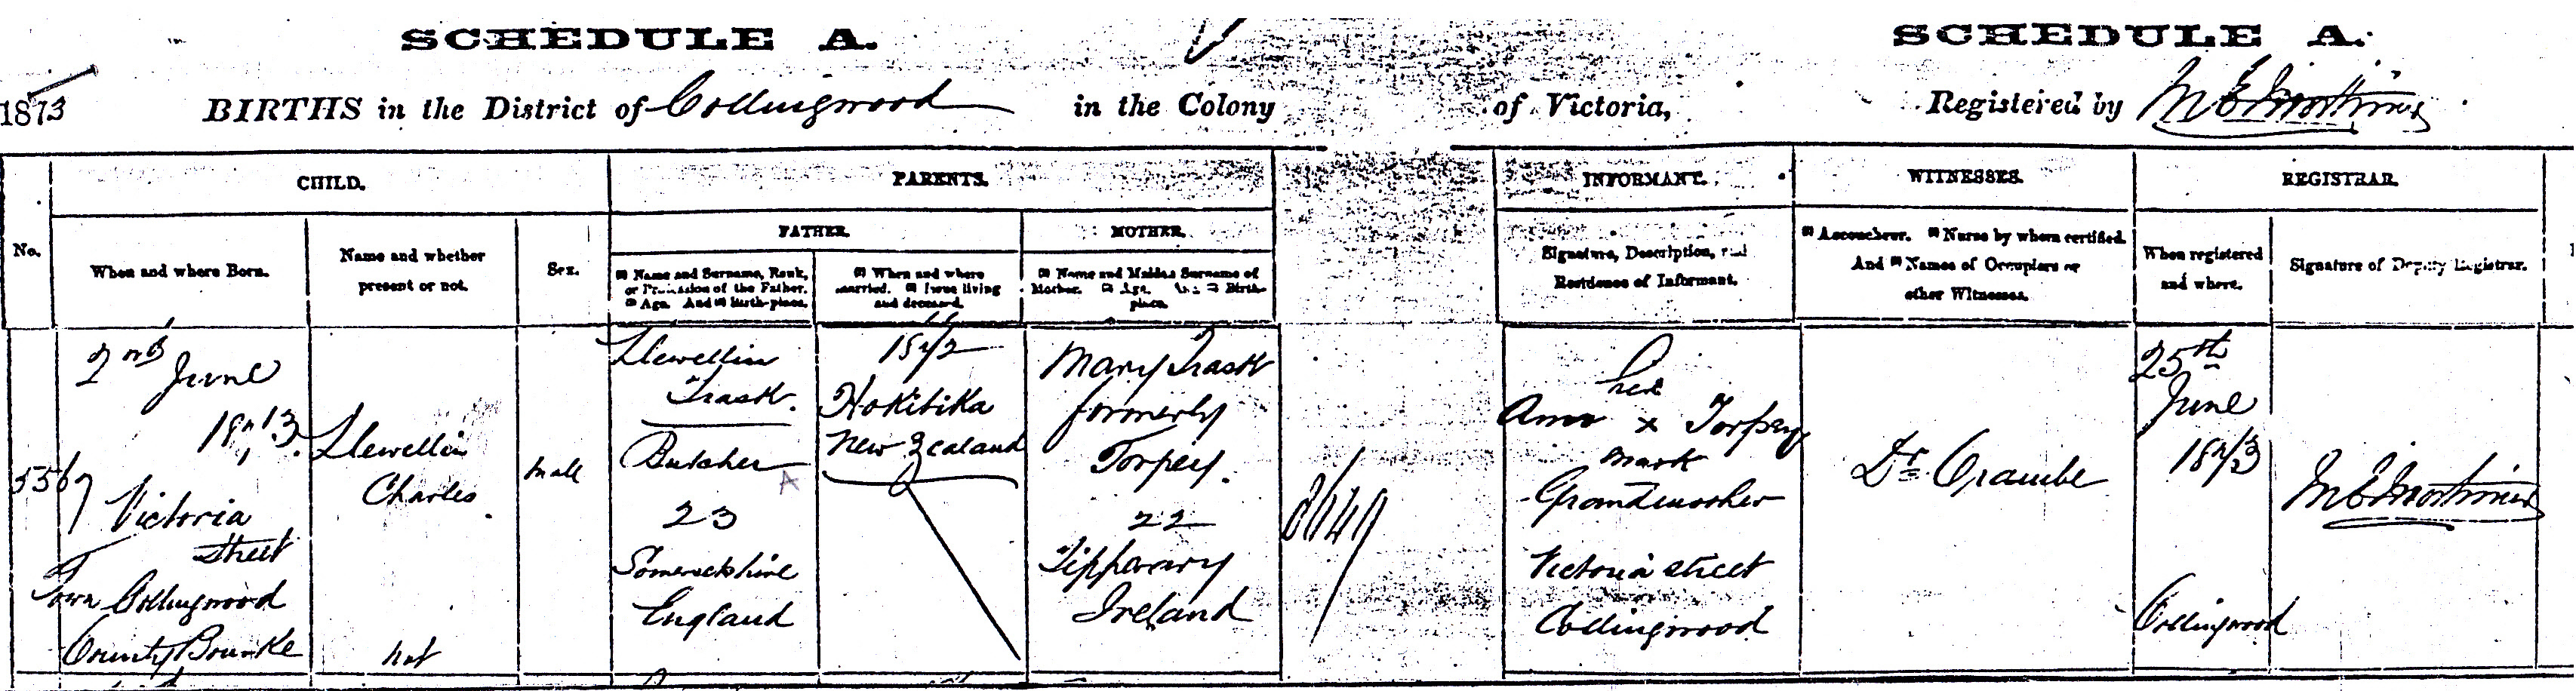 Birth Certificate Llewellyn Charles Trask born 1873_NEW